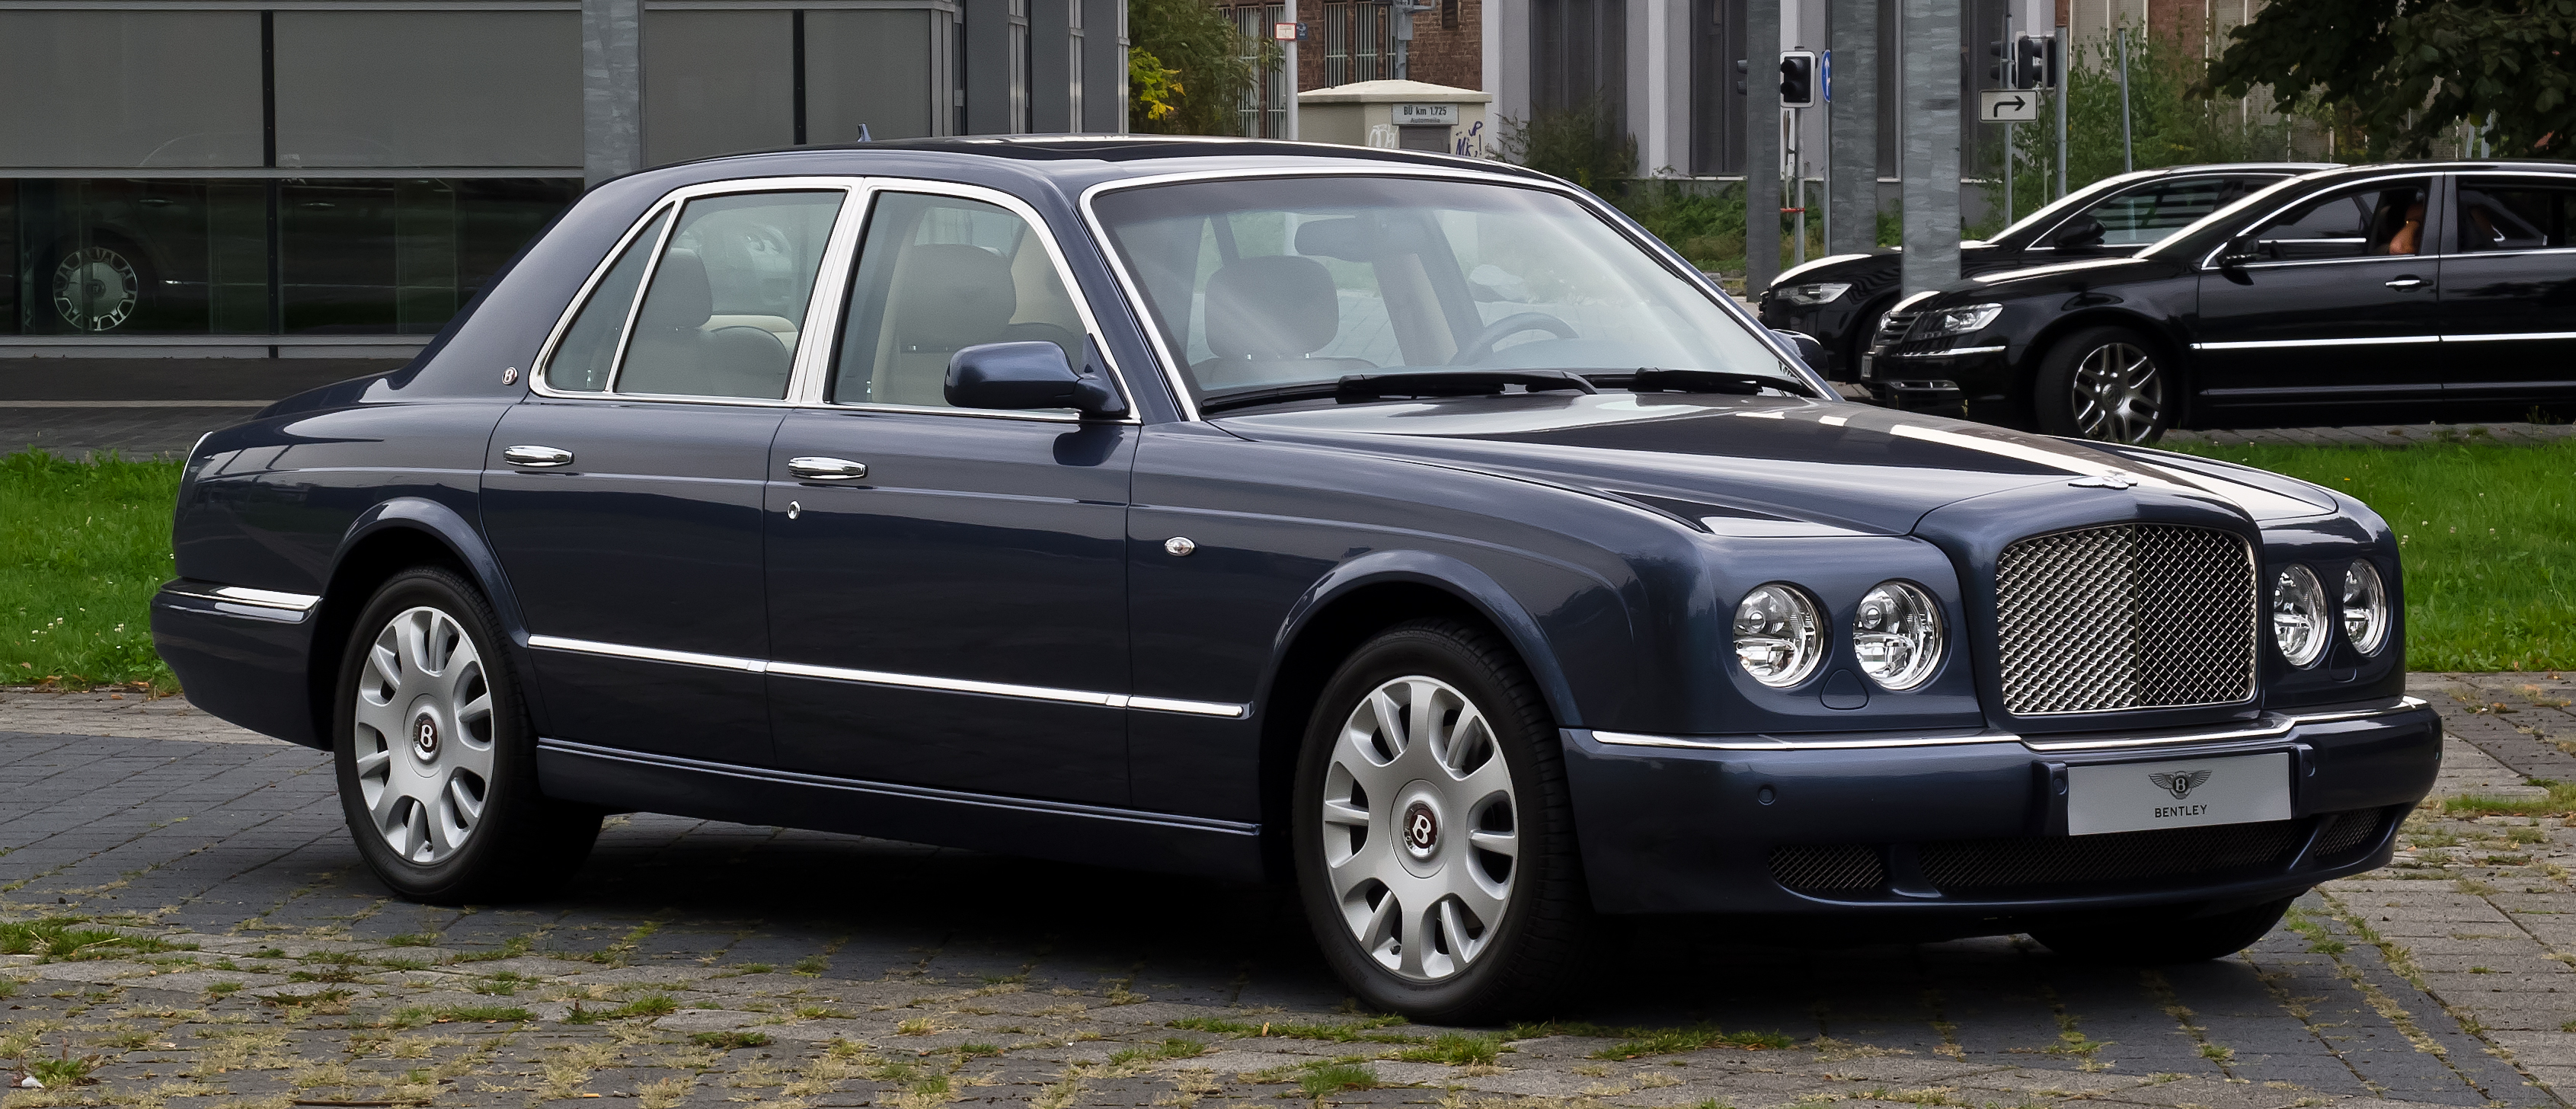 Pictures of bentley arnage rl 2004 #5